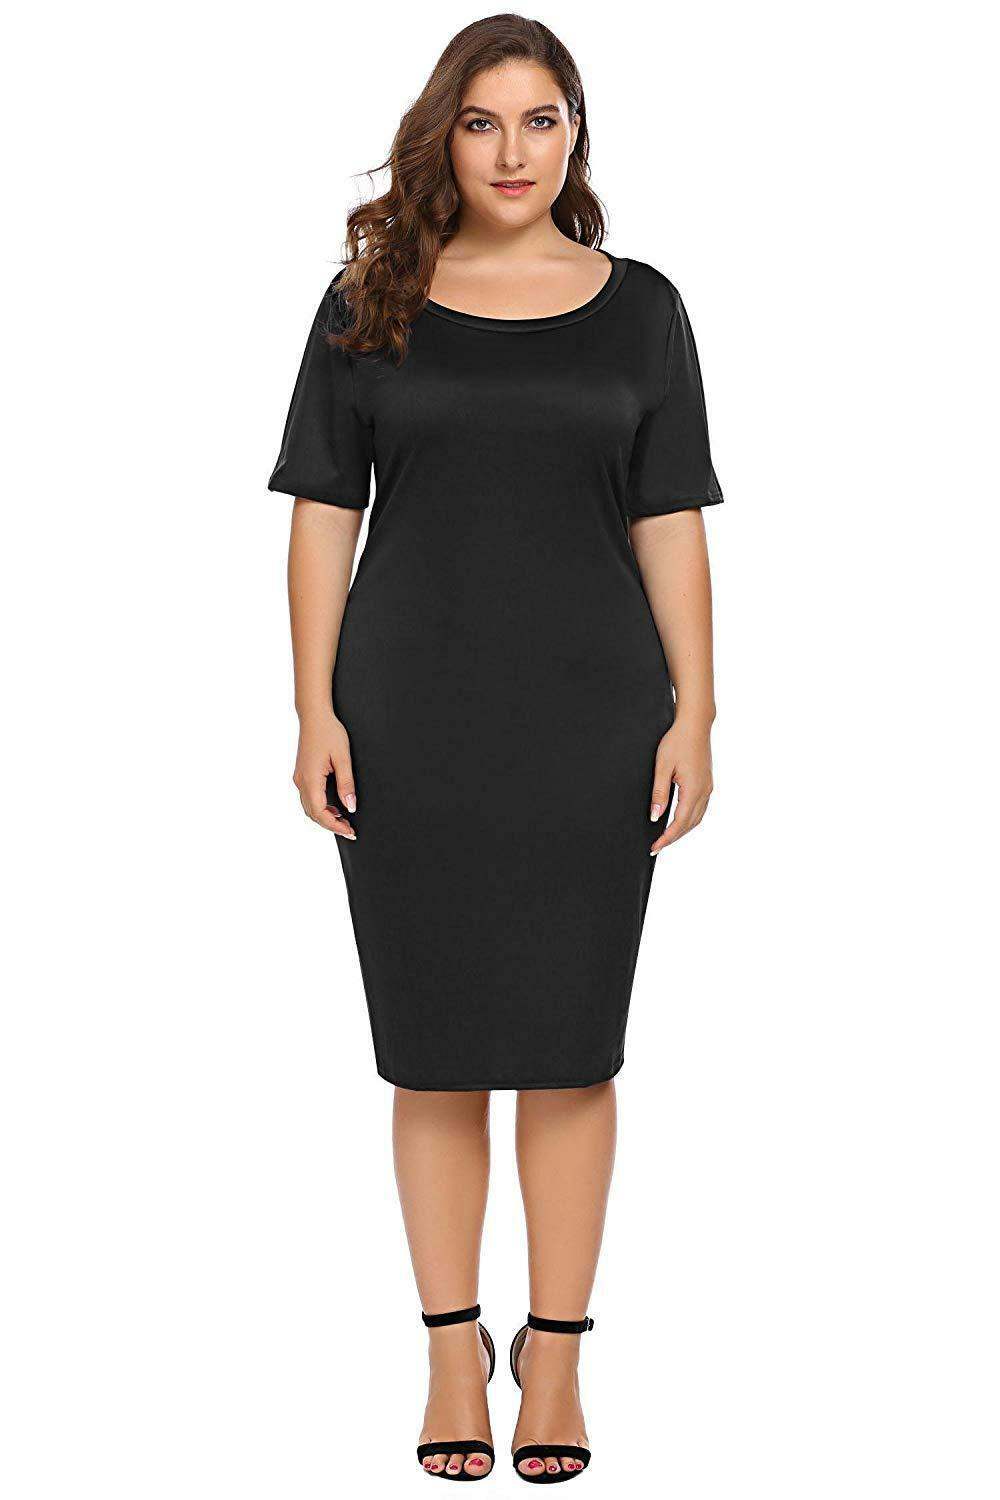 Zeagoo Women Plus Size Loose Fit Short Sleeve O-Neck Casual Midi Dress image 9